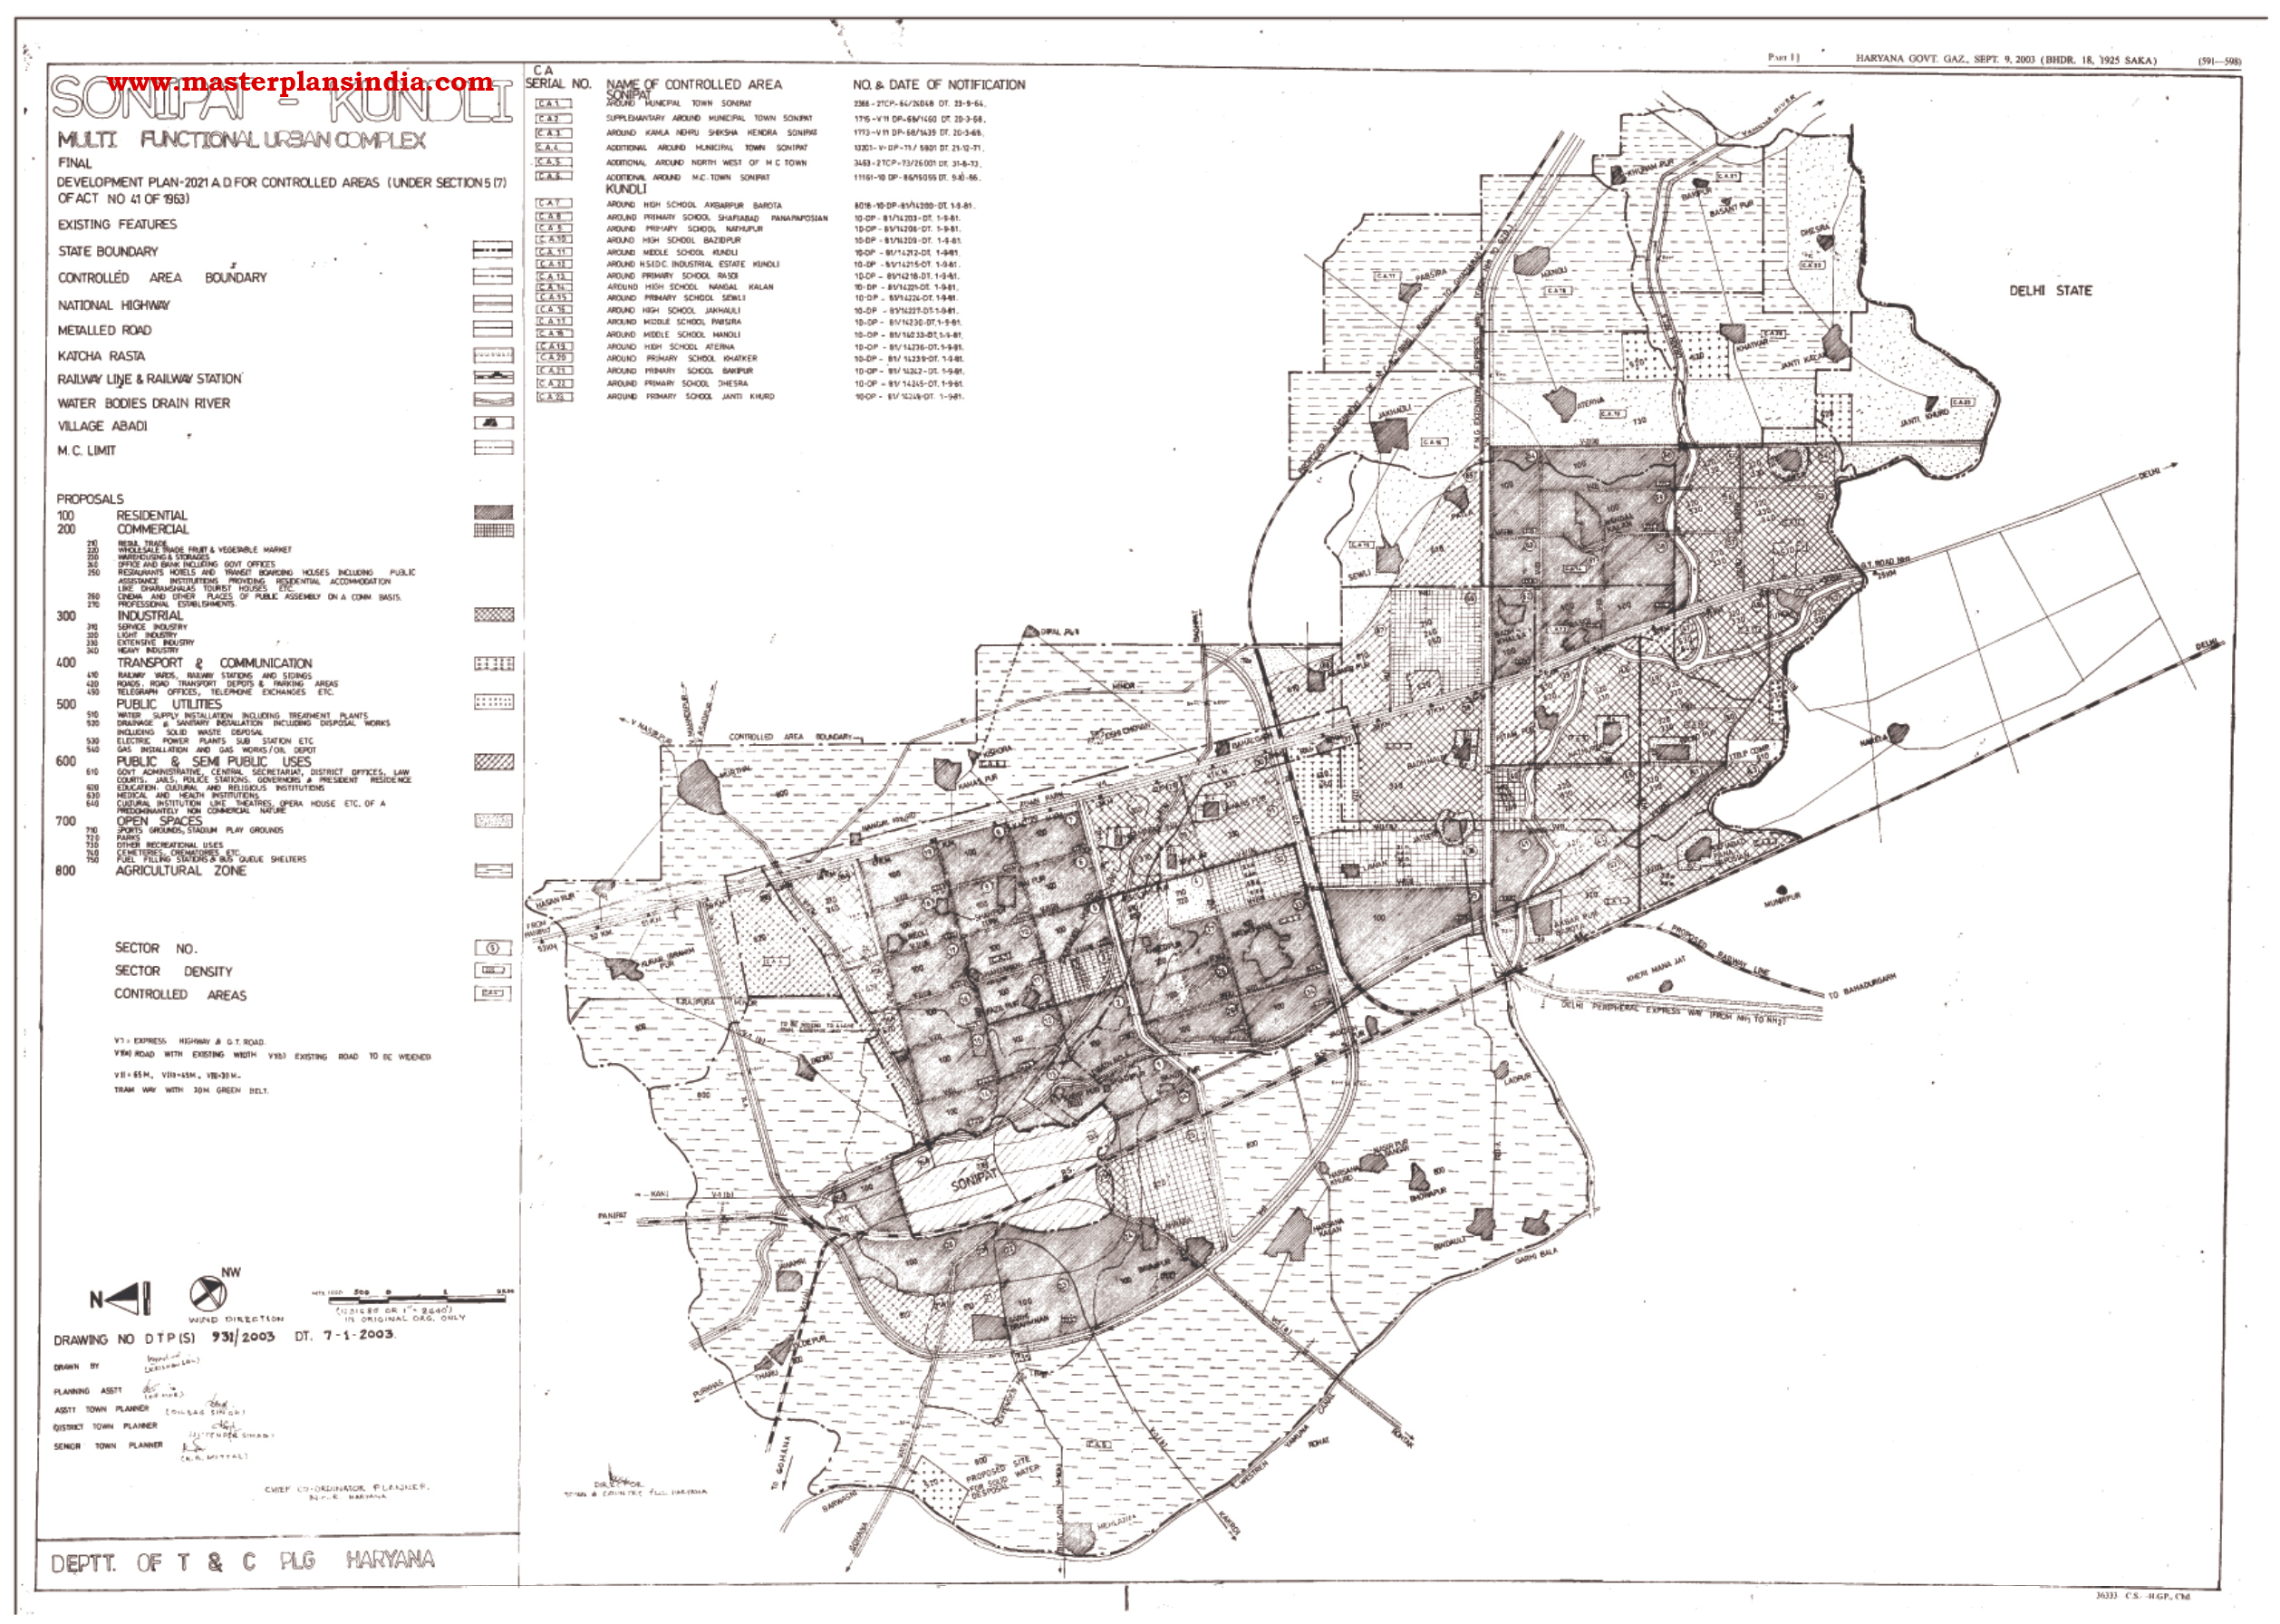 Form 38 download noida map